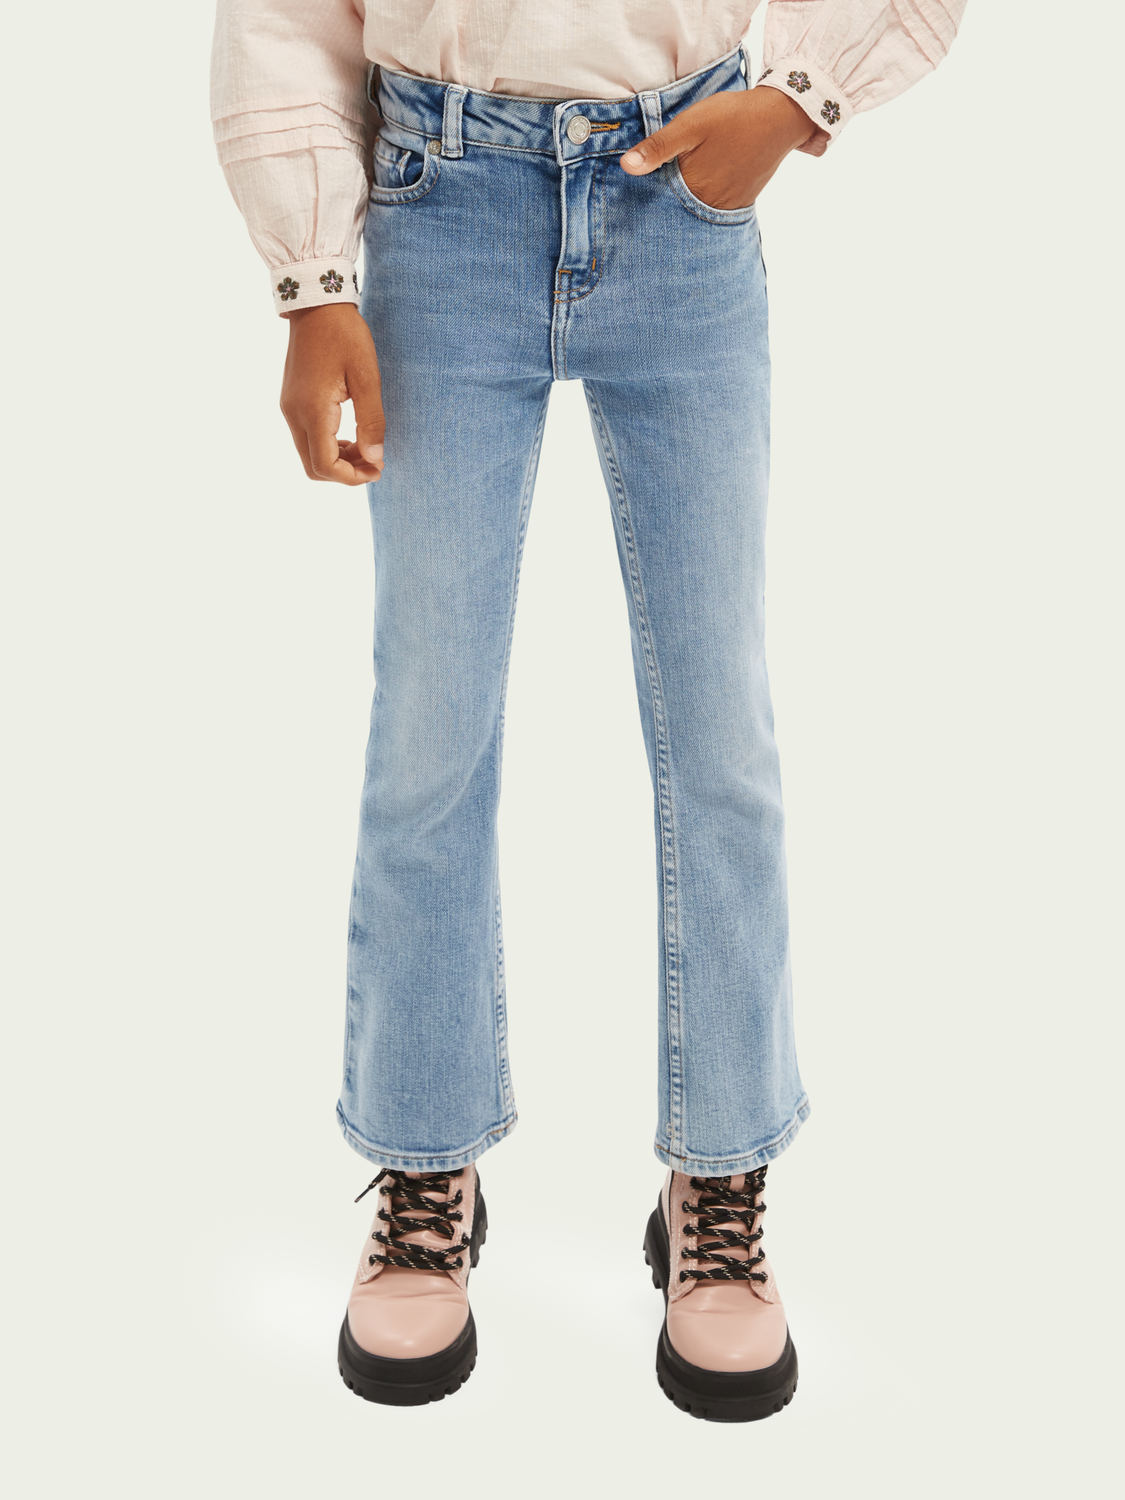 Kids The Charm high rise jeans — Crystal clear